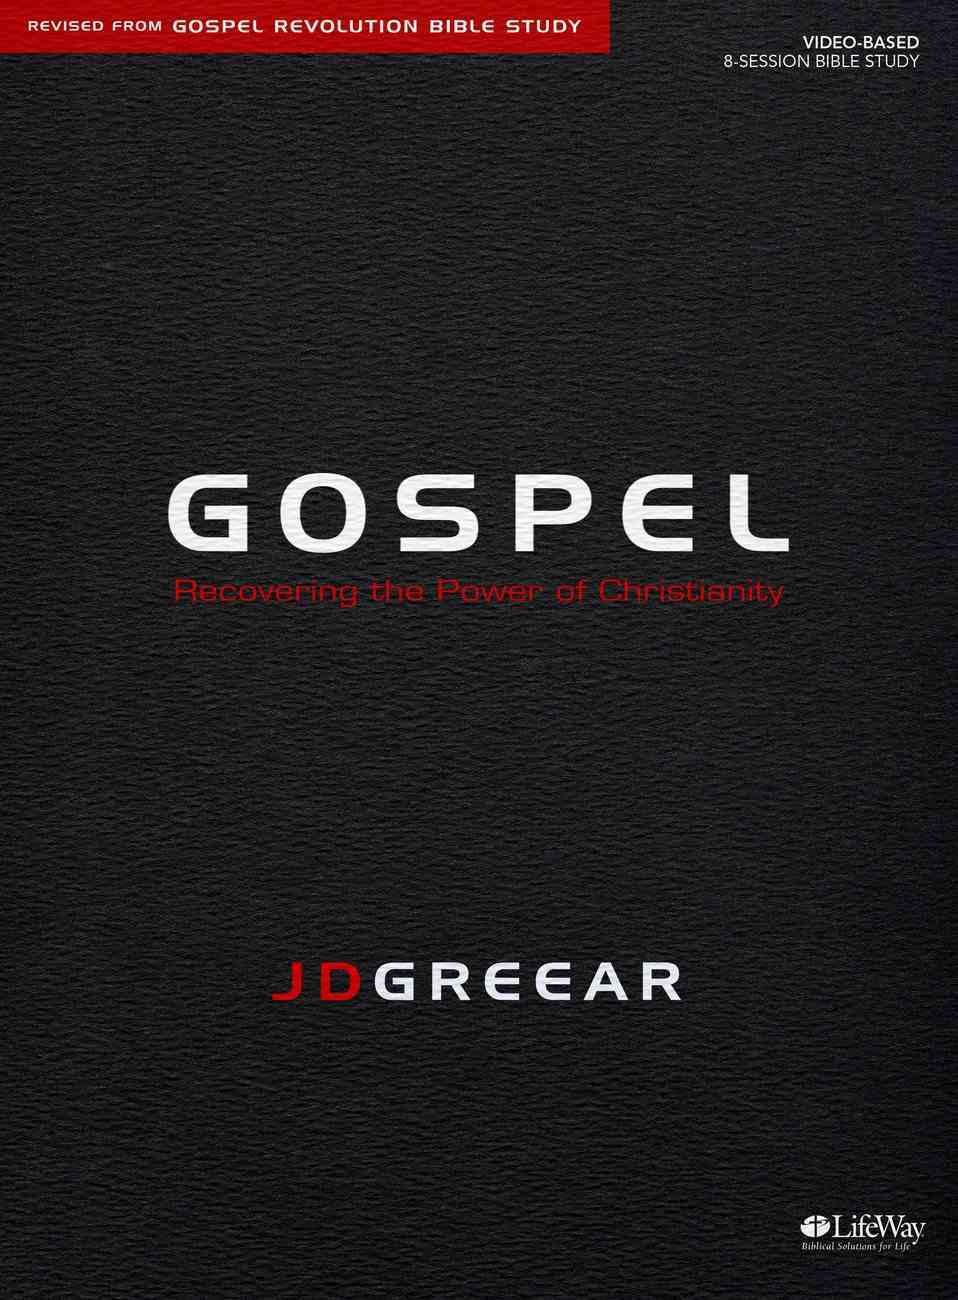 Gospel: Recovering the Power of Christianity (8 Sessions) (Bible Study Book) Paperback